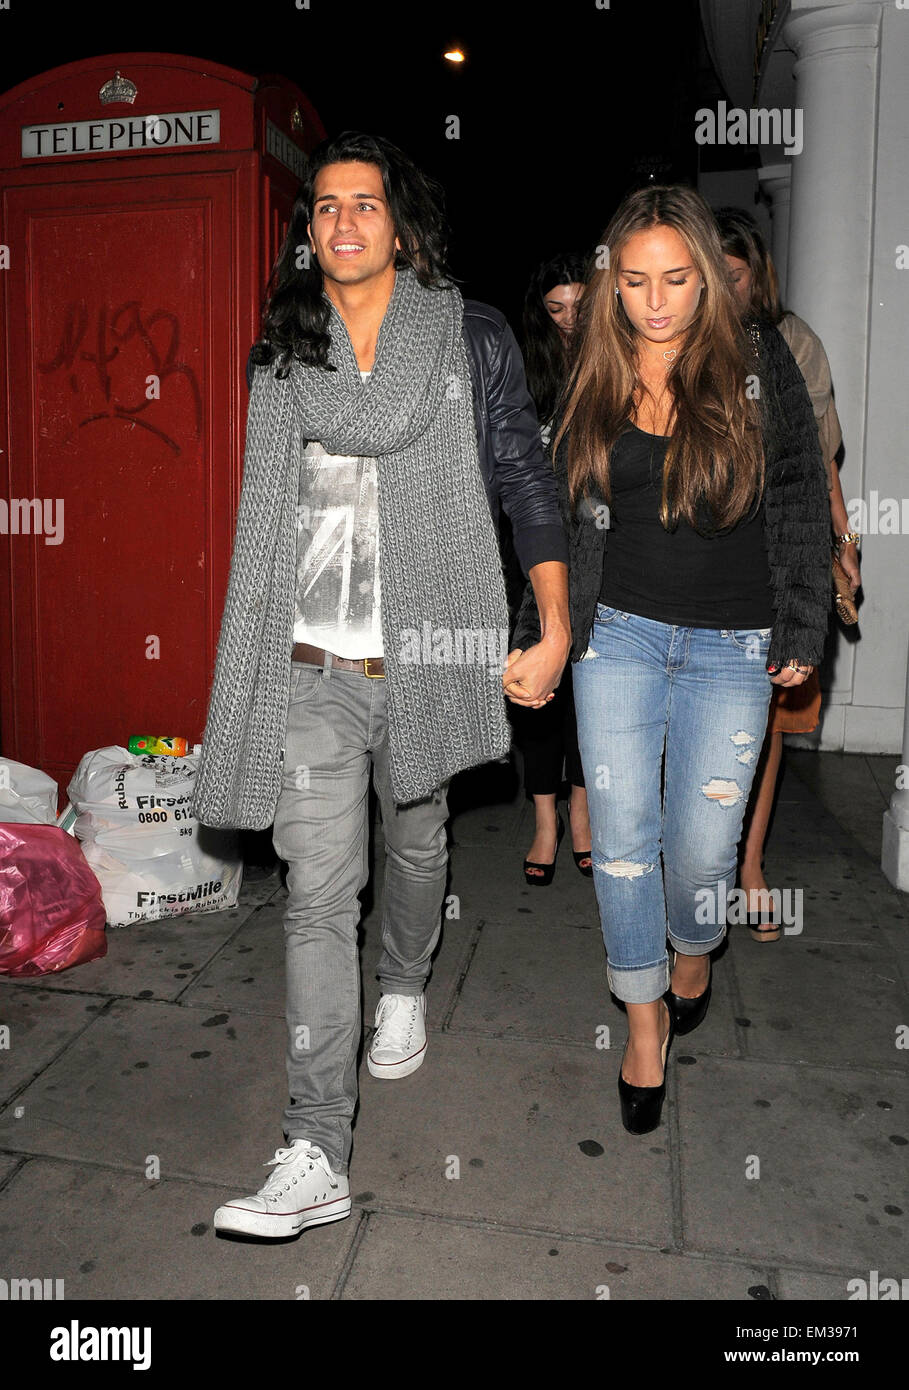 6f918de82c749 LONDON TOP SHOP HEIRESS CHLOE GREEN AND HER NEW MADE IN CHELSEA BOYFRIEND  OLLIE LOCKE COULDN'T KEEP THEIR HANDS OFF EACH OTHER WHILST DINING AT NOBU  ...